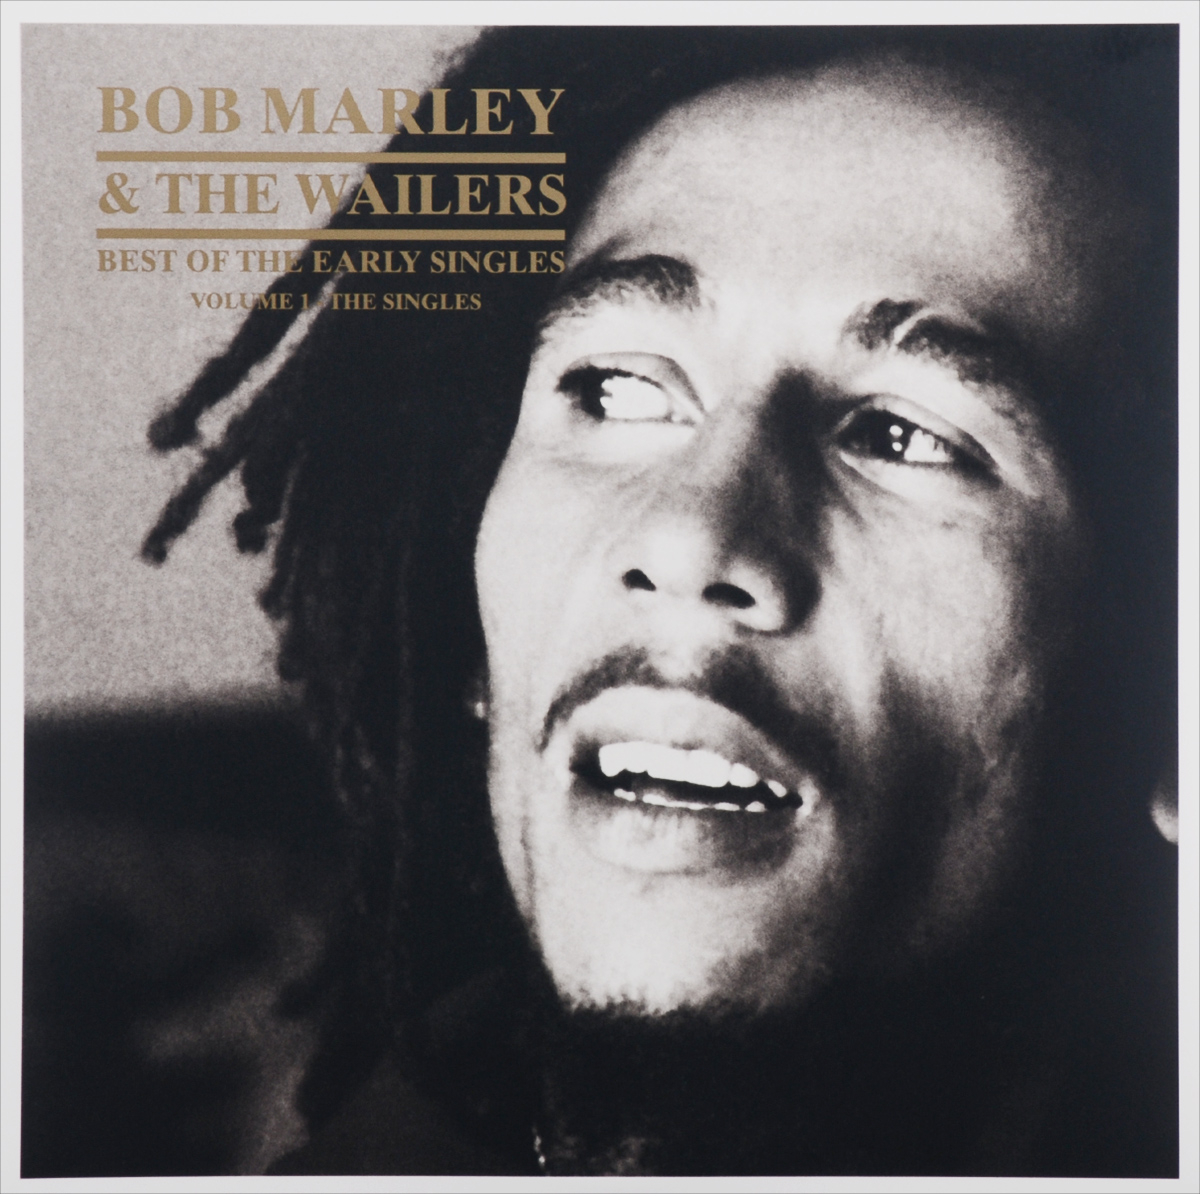 Боб Марли,The Wailers Bob Marley & The Wailers. Best Of The Early Singles. Volume 1 - The Singles (2 LP) early signs of language shifting